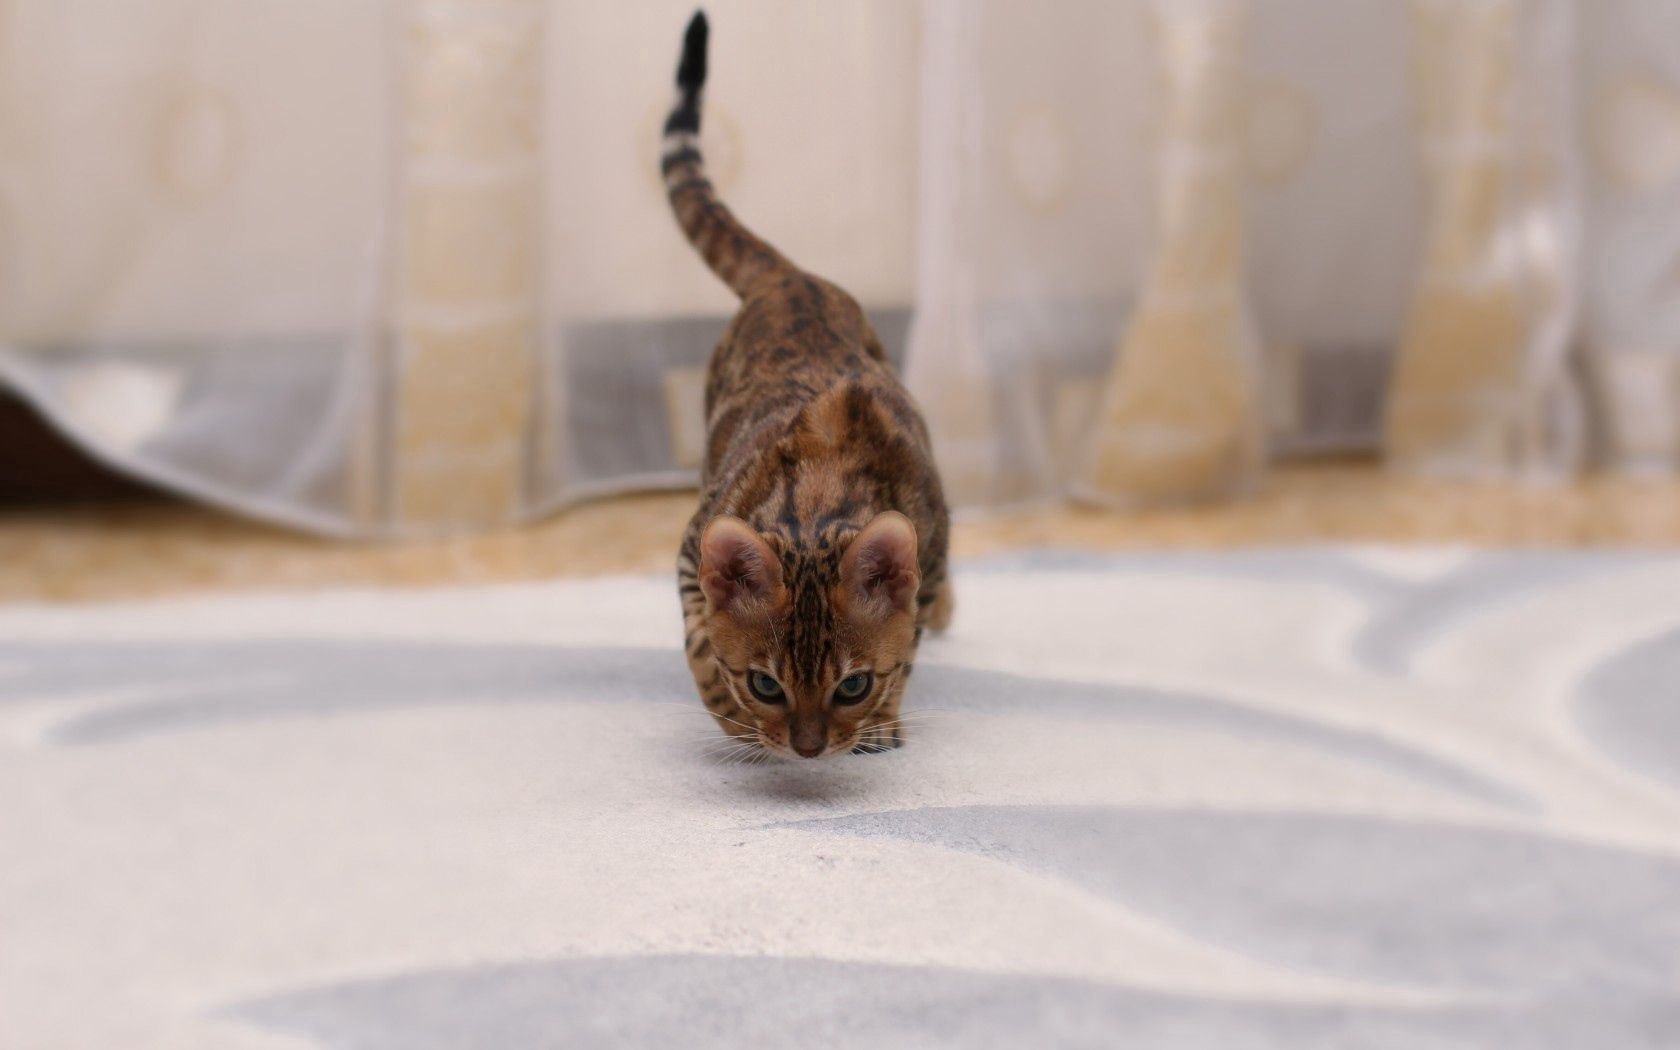 124236 download wallpaper Animals, Bengal Cat, Cat, Spotted, Spotty screensavers and pictures for free